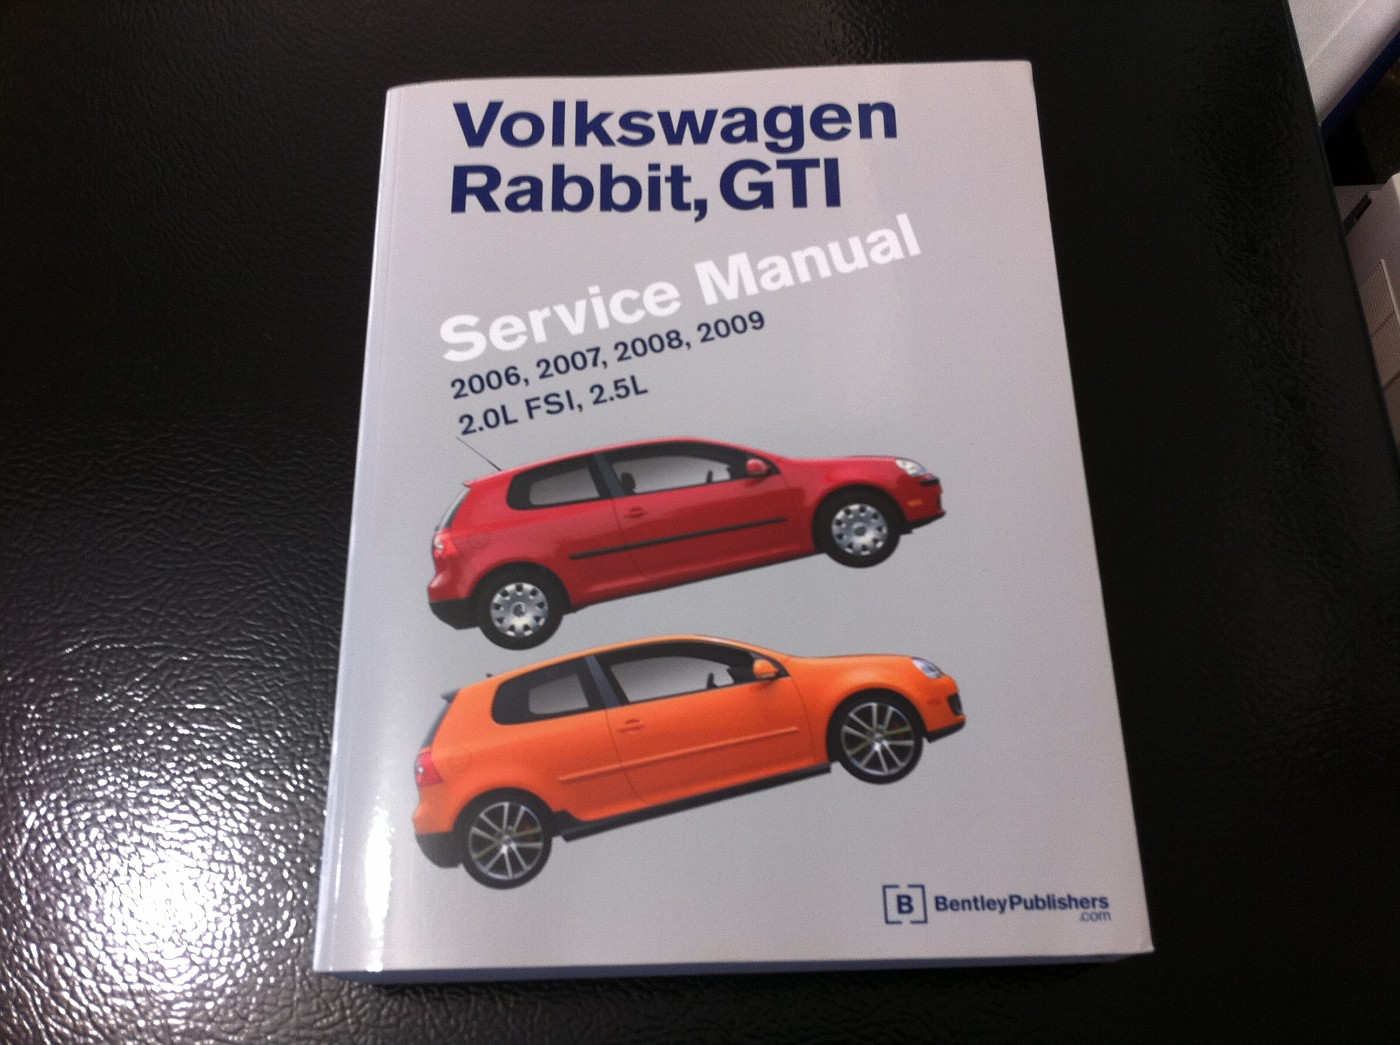 SOLD $50 Bentley Service Manual for VW Rabbit, GTI 2006-2009